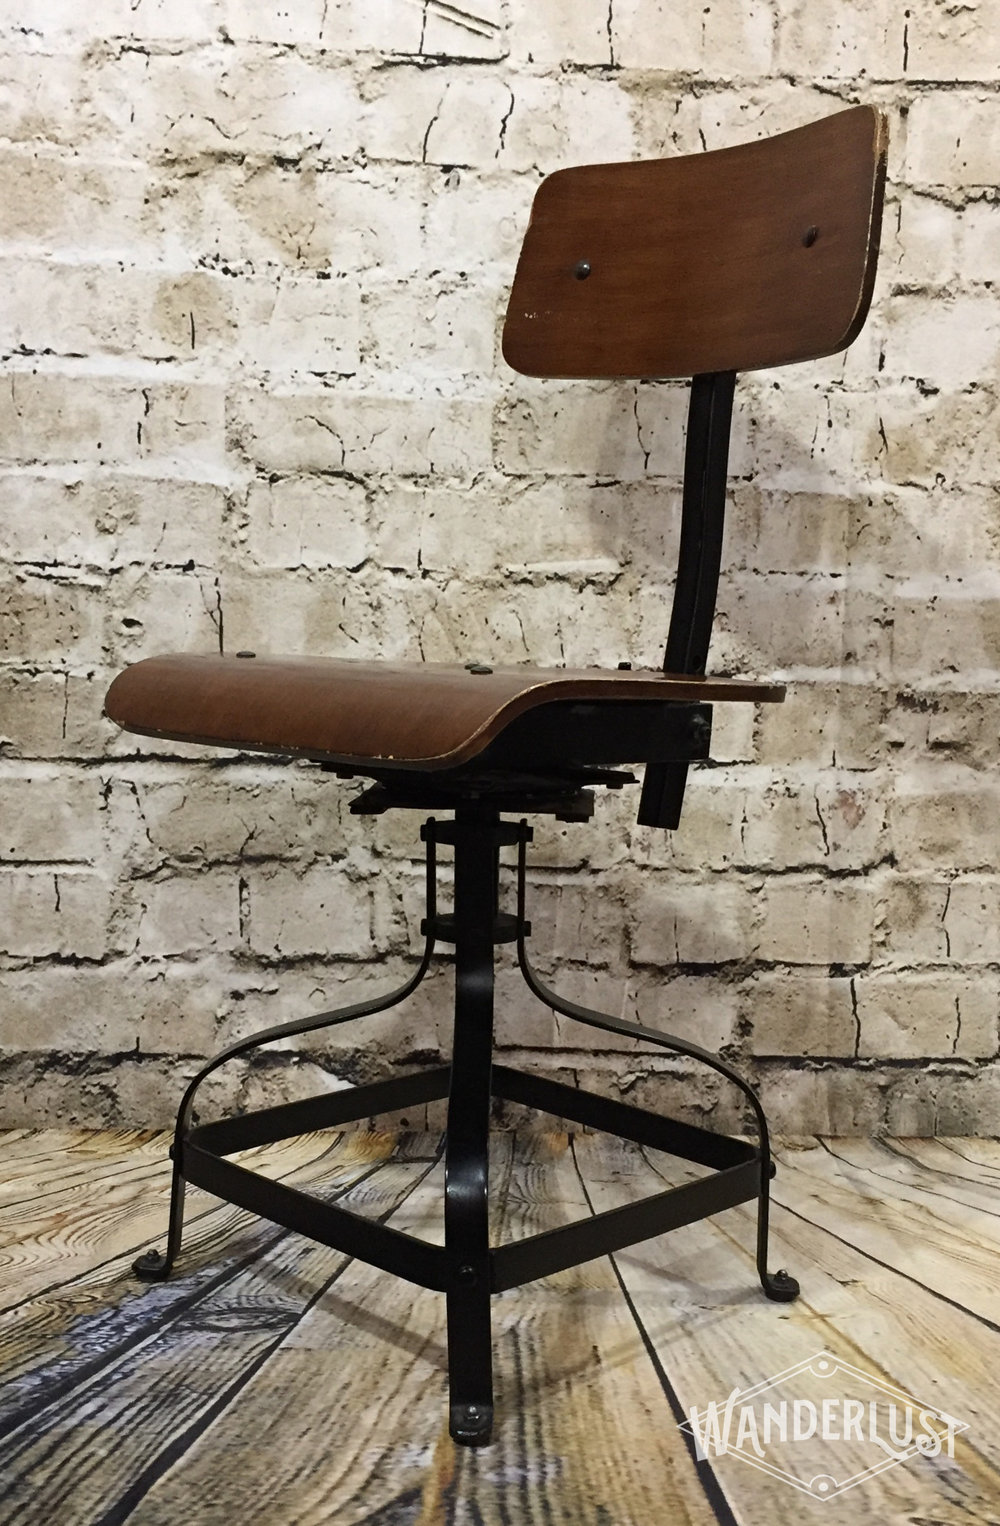 industrial-desk-chair.jpg